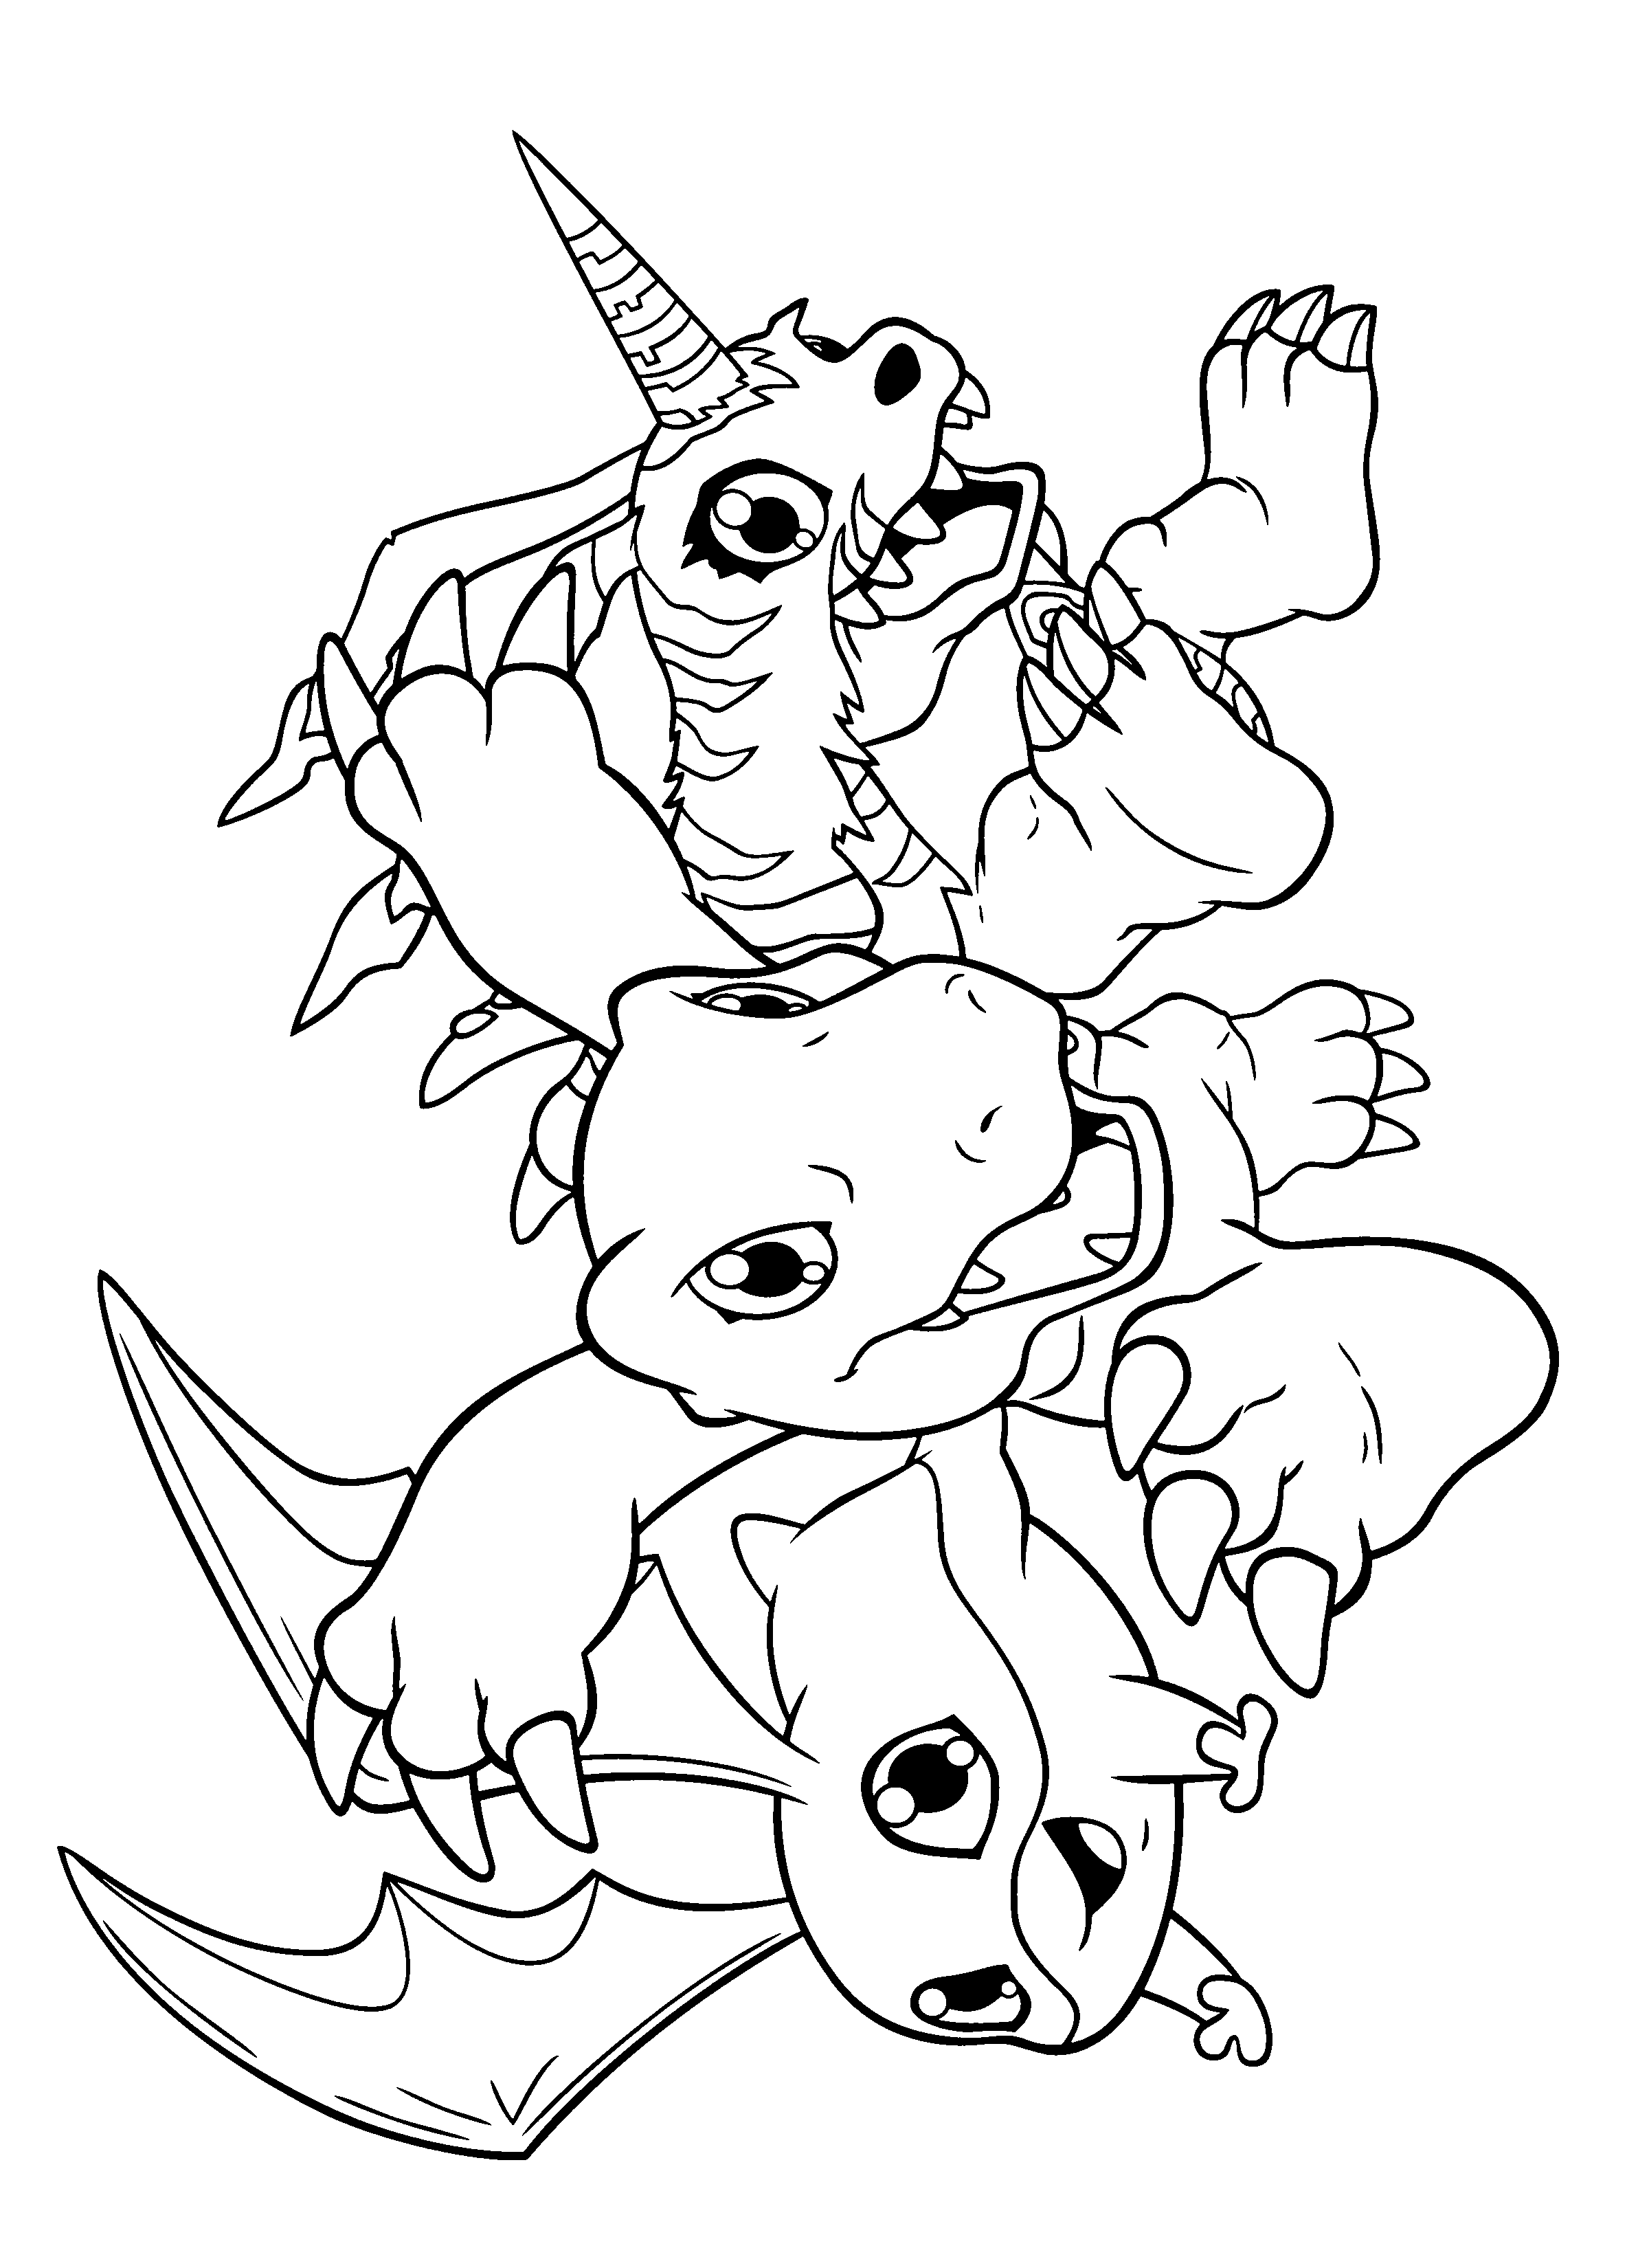 coloring digimon digimon cartoons page 4 printable coloring pages digimon coloring